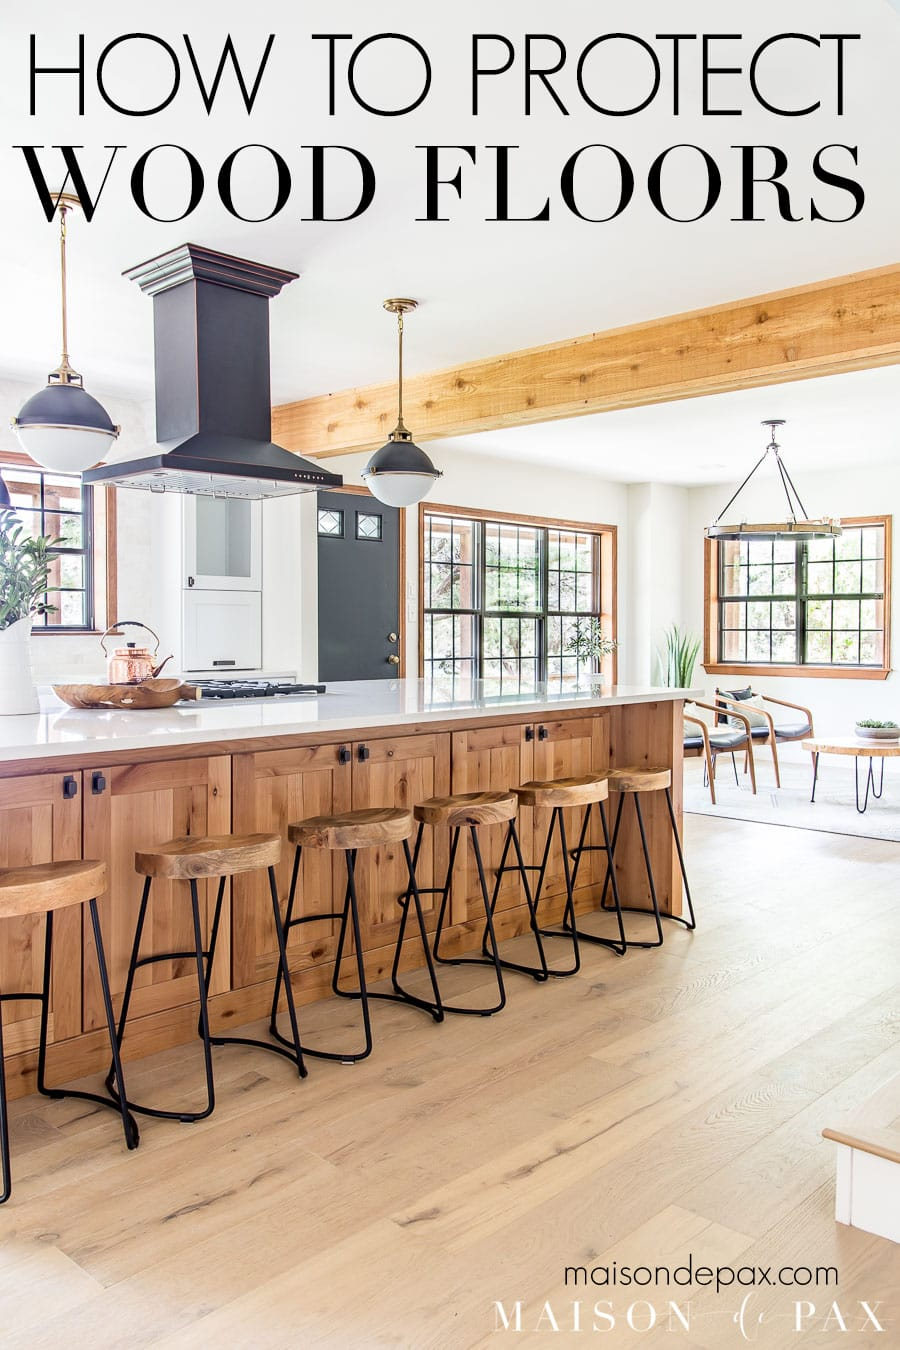 open living/kitchen with wood floors and text overlay: how to protect wood floors | Maison de Pax